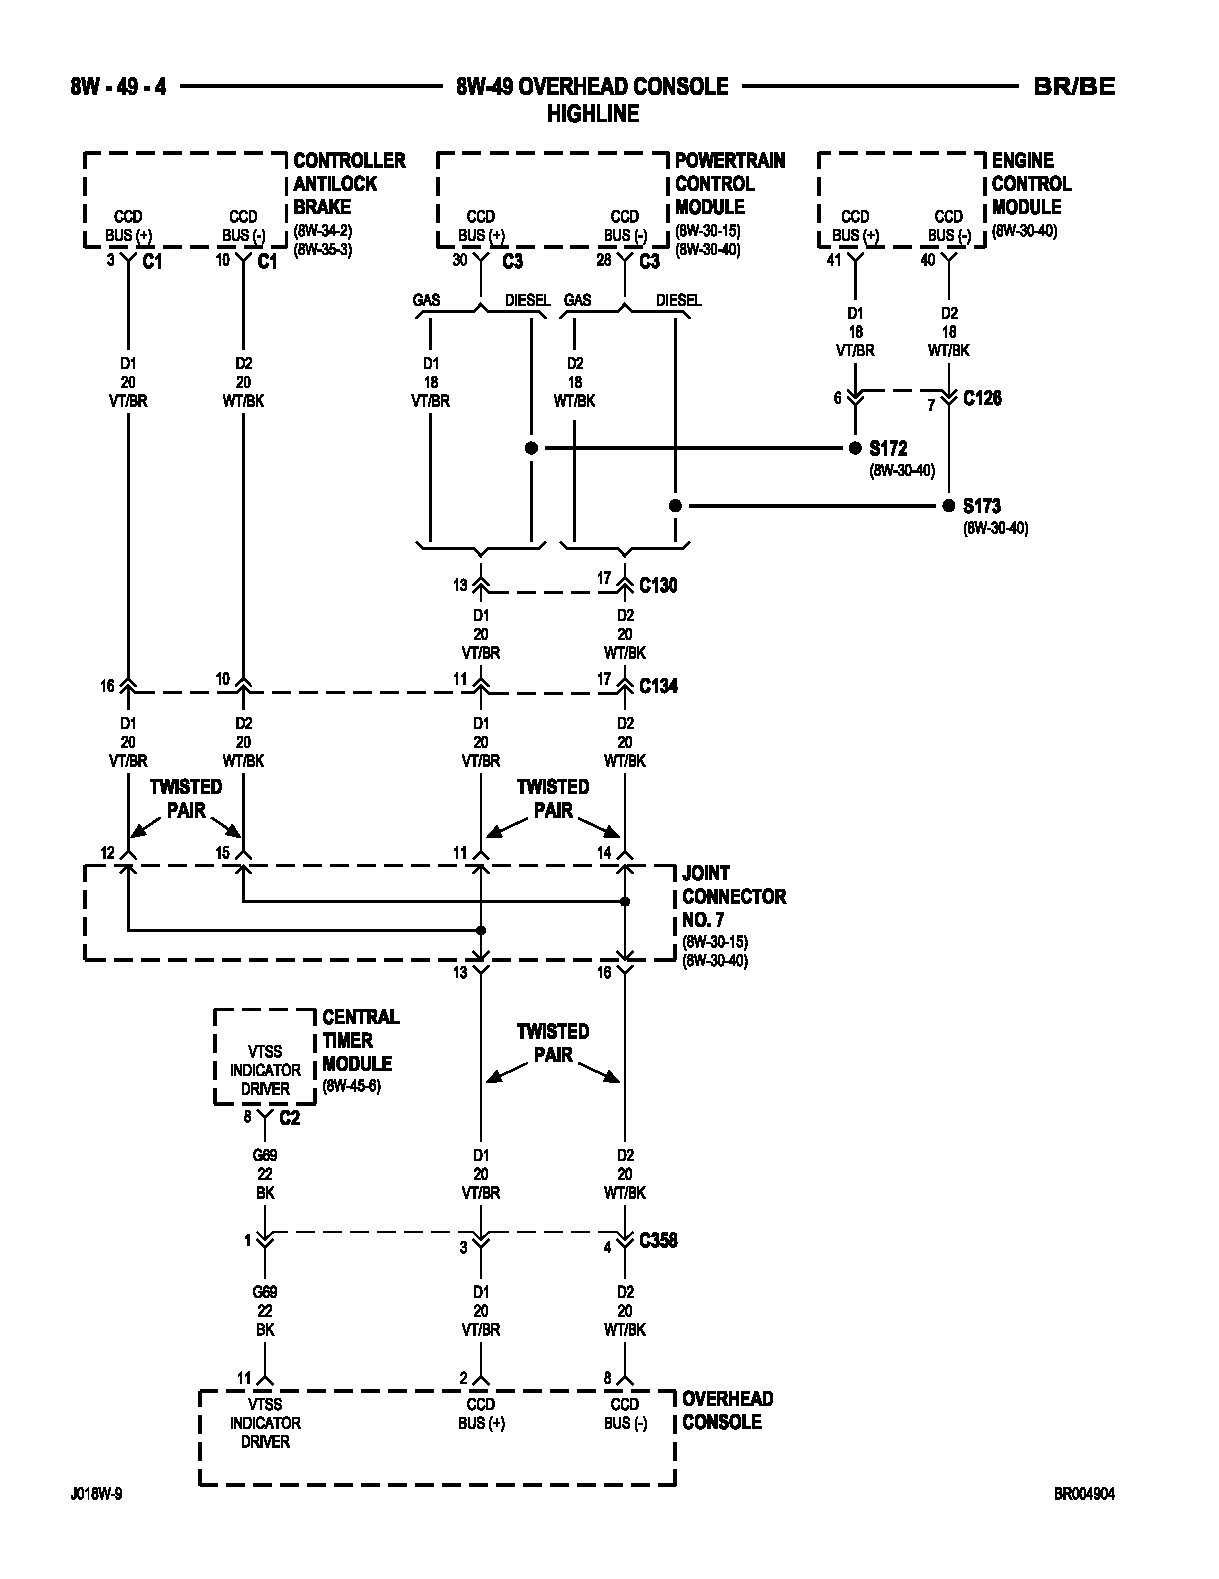 Overhead Entertainment System Wiring Diagram